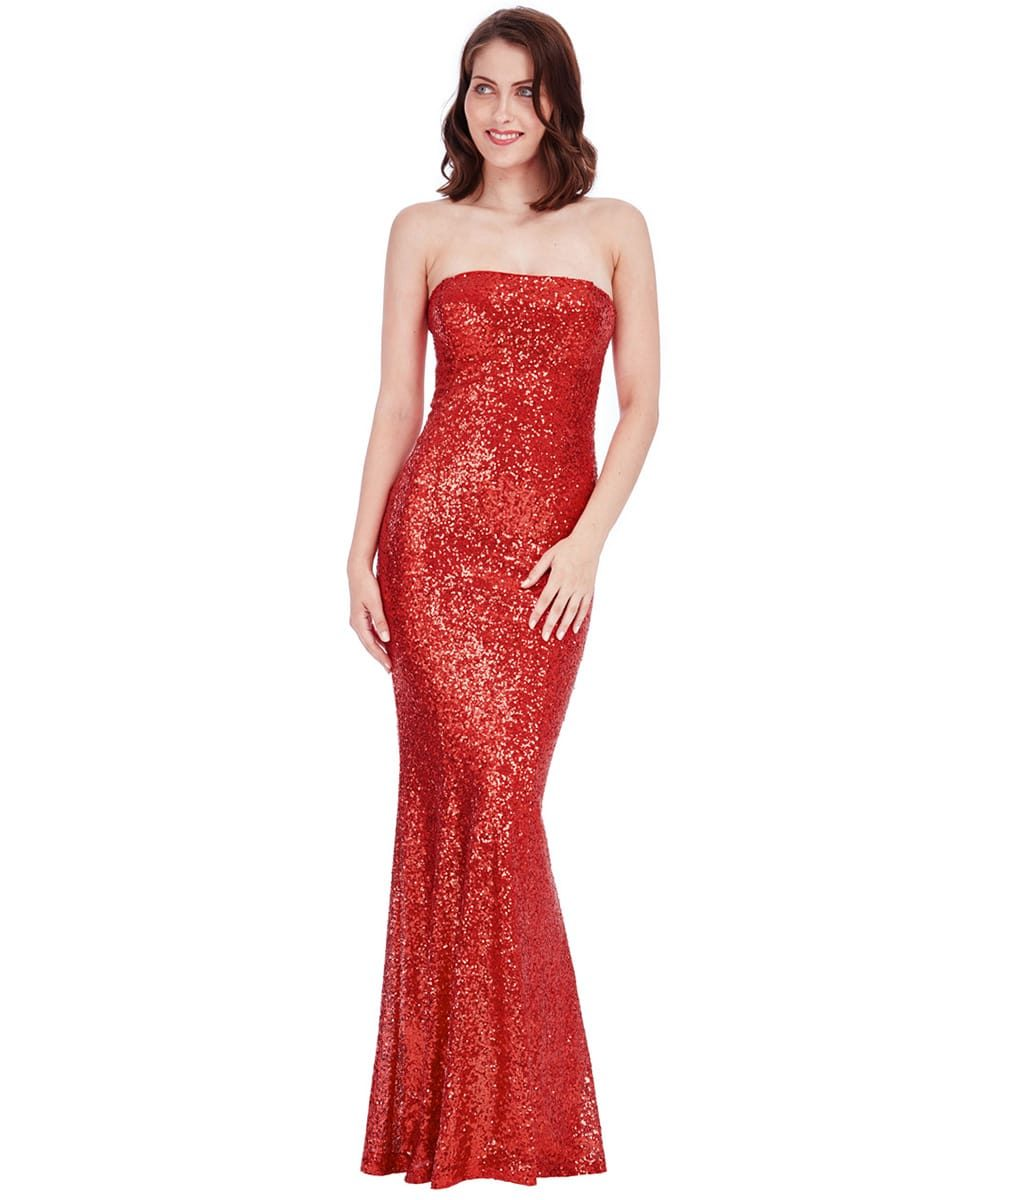 281ceec1 City Goddess - Red Strapless Sequin Gown | Alila Boutique